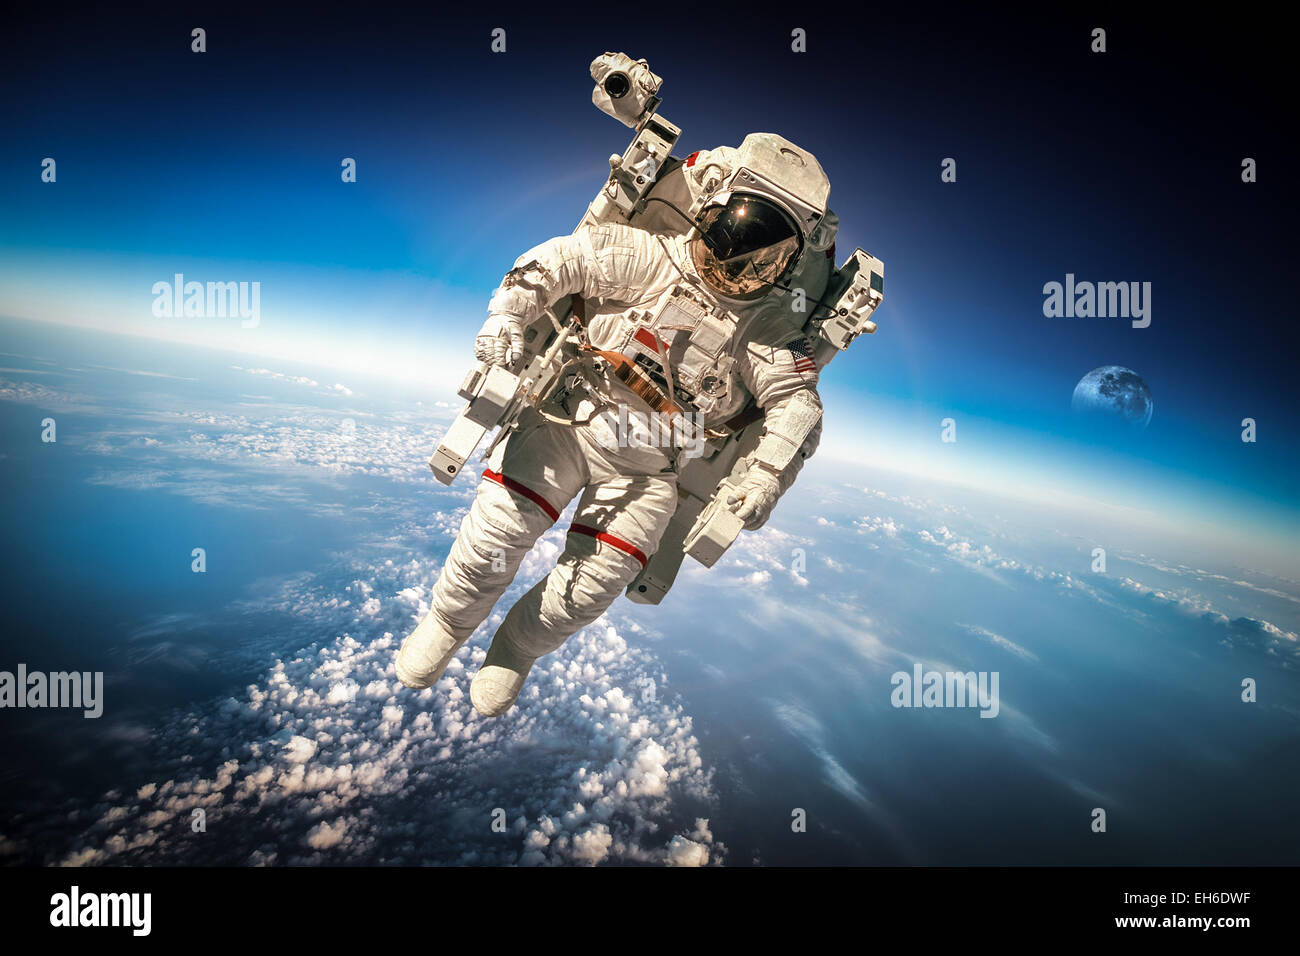 Astronaut in outer space against the backdrop of the planet earth. Elements of this image furnished by NASA. - Stock Image